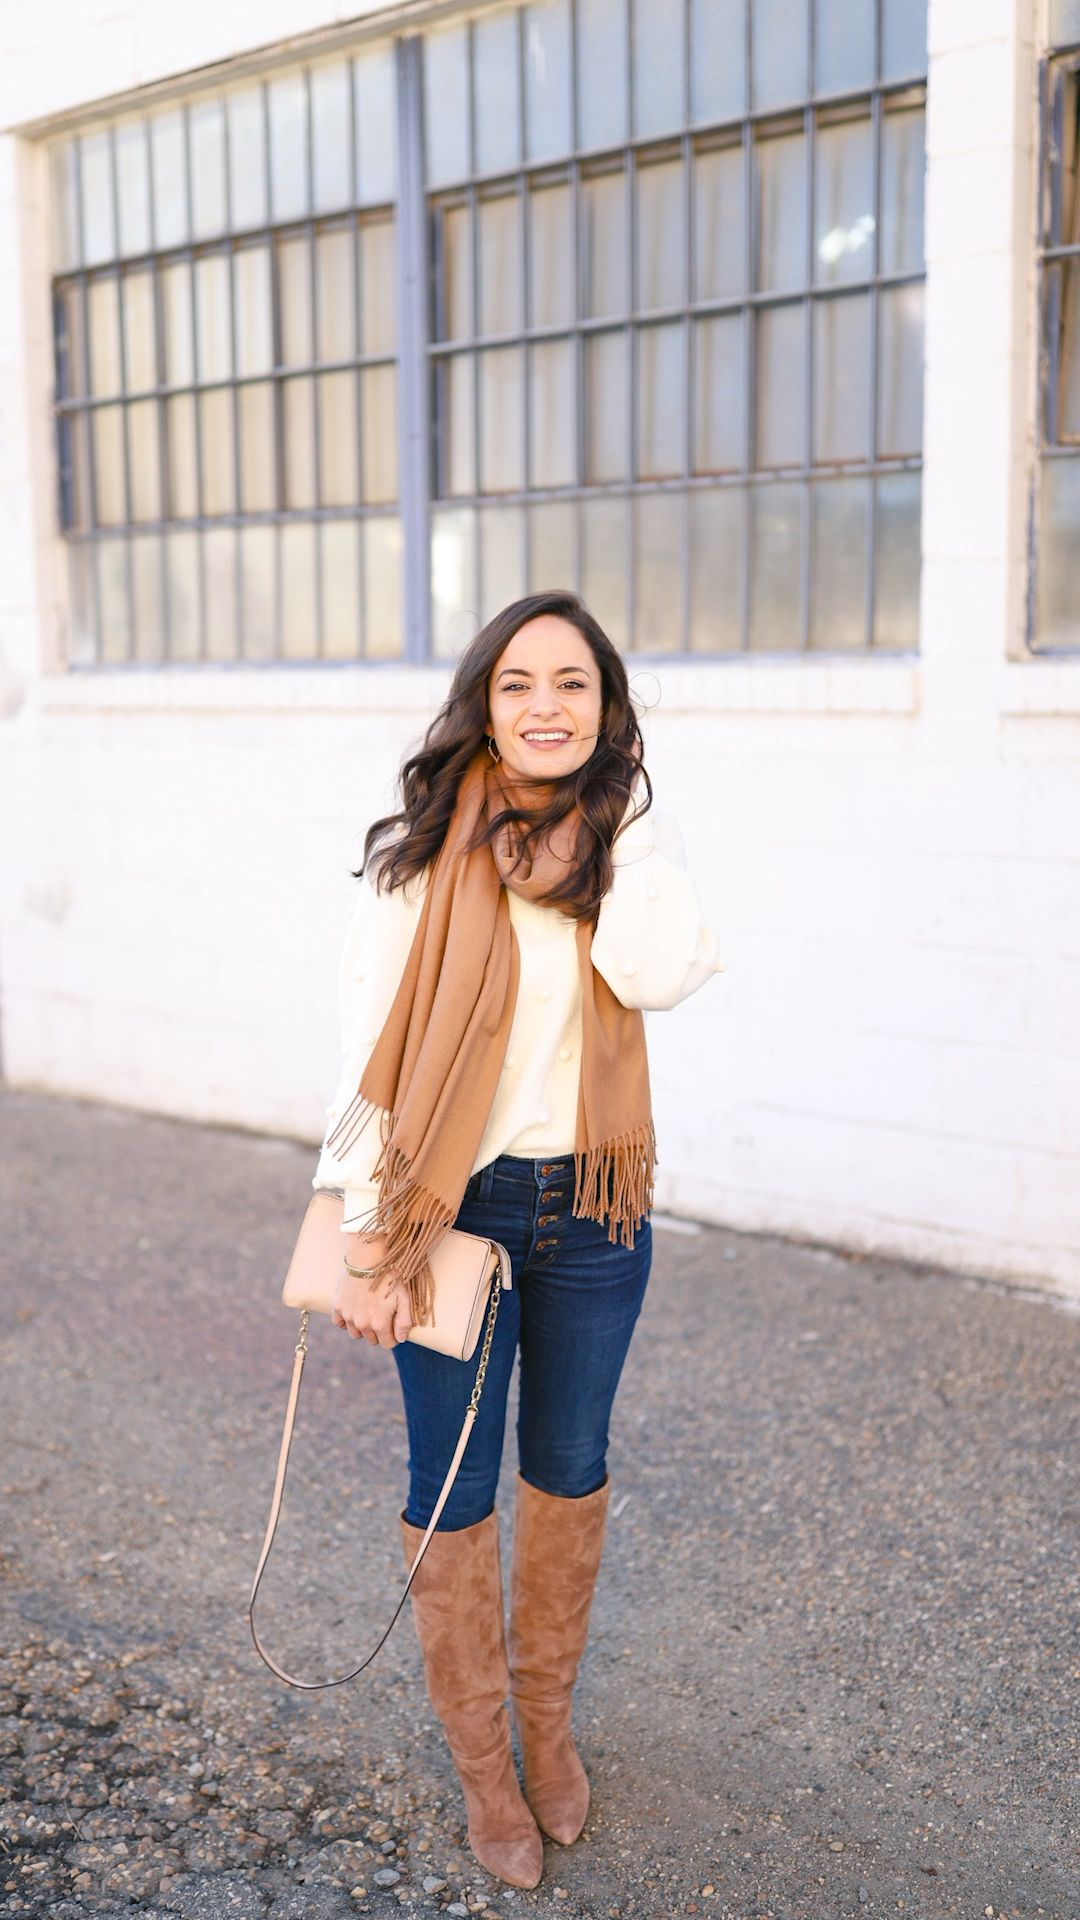 White sweater from Madewell styled three ways for winter. Styled by petite style blogger, Brooke of Pumps and push-ups.